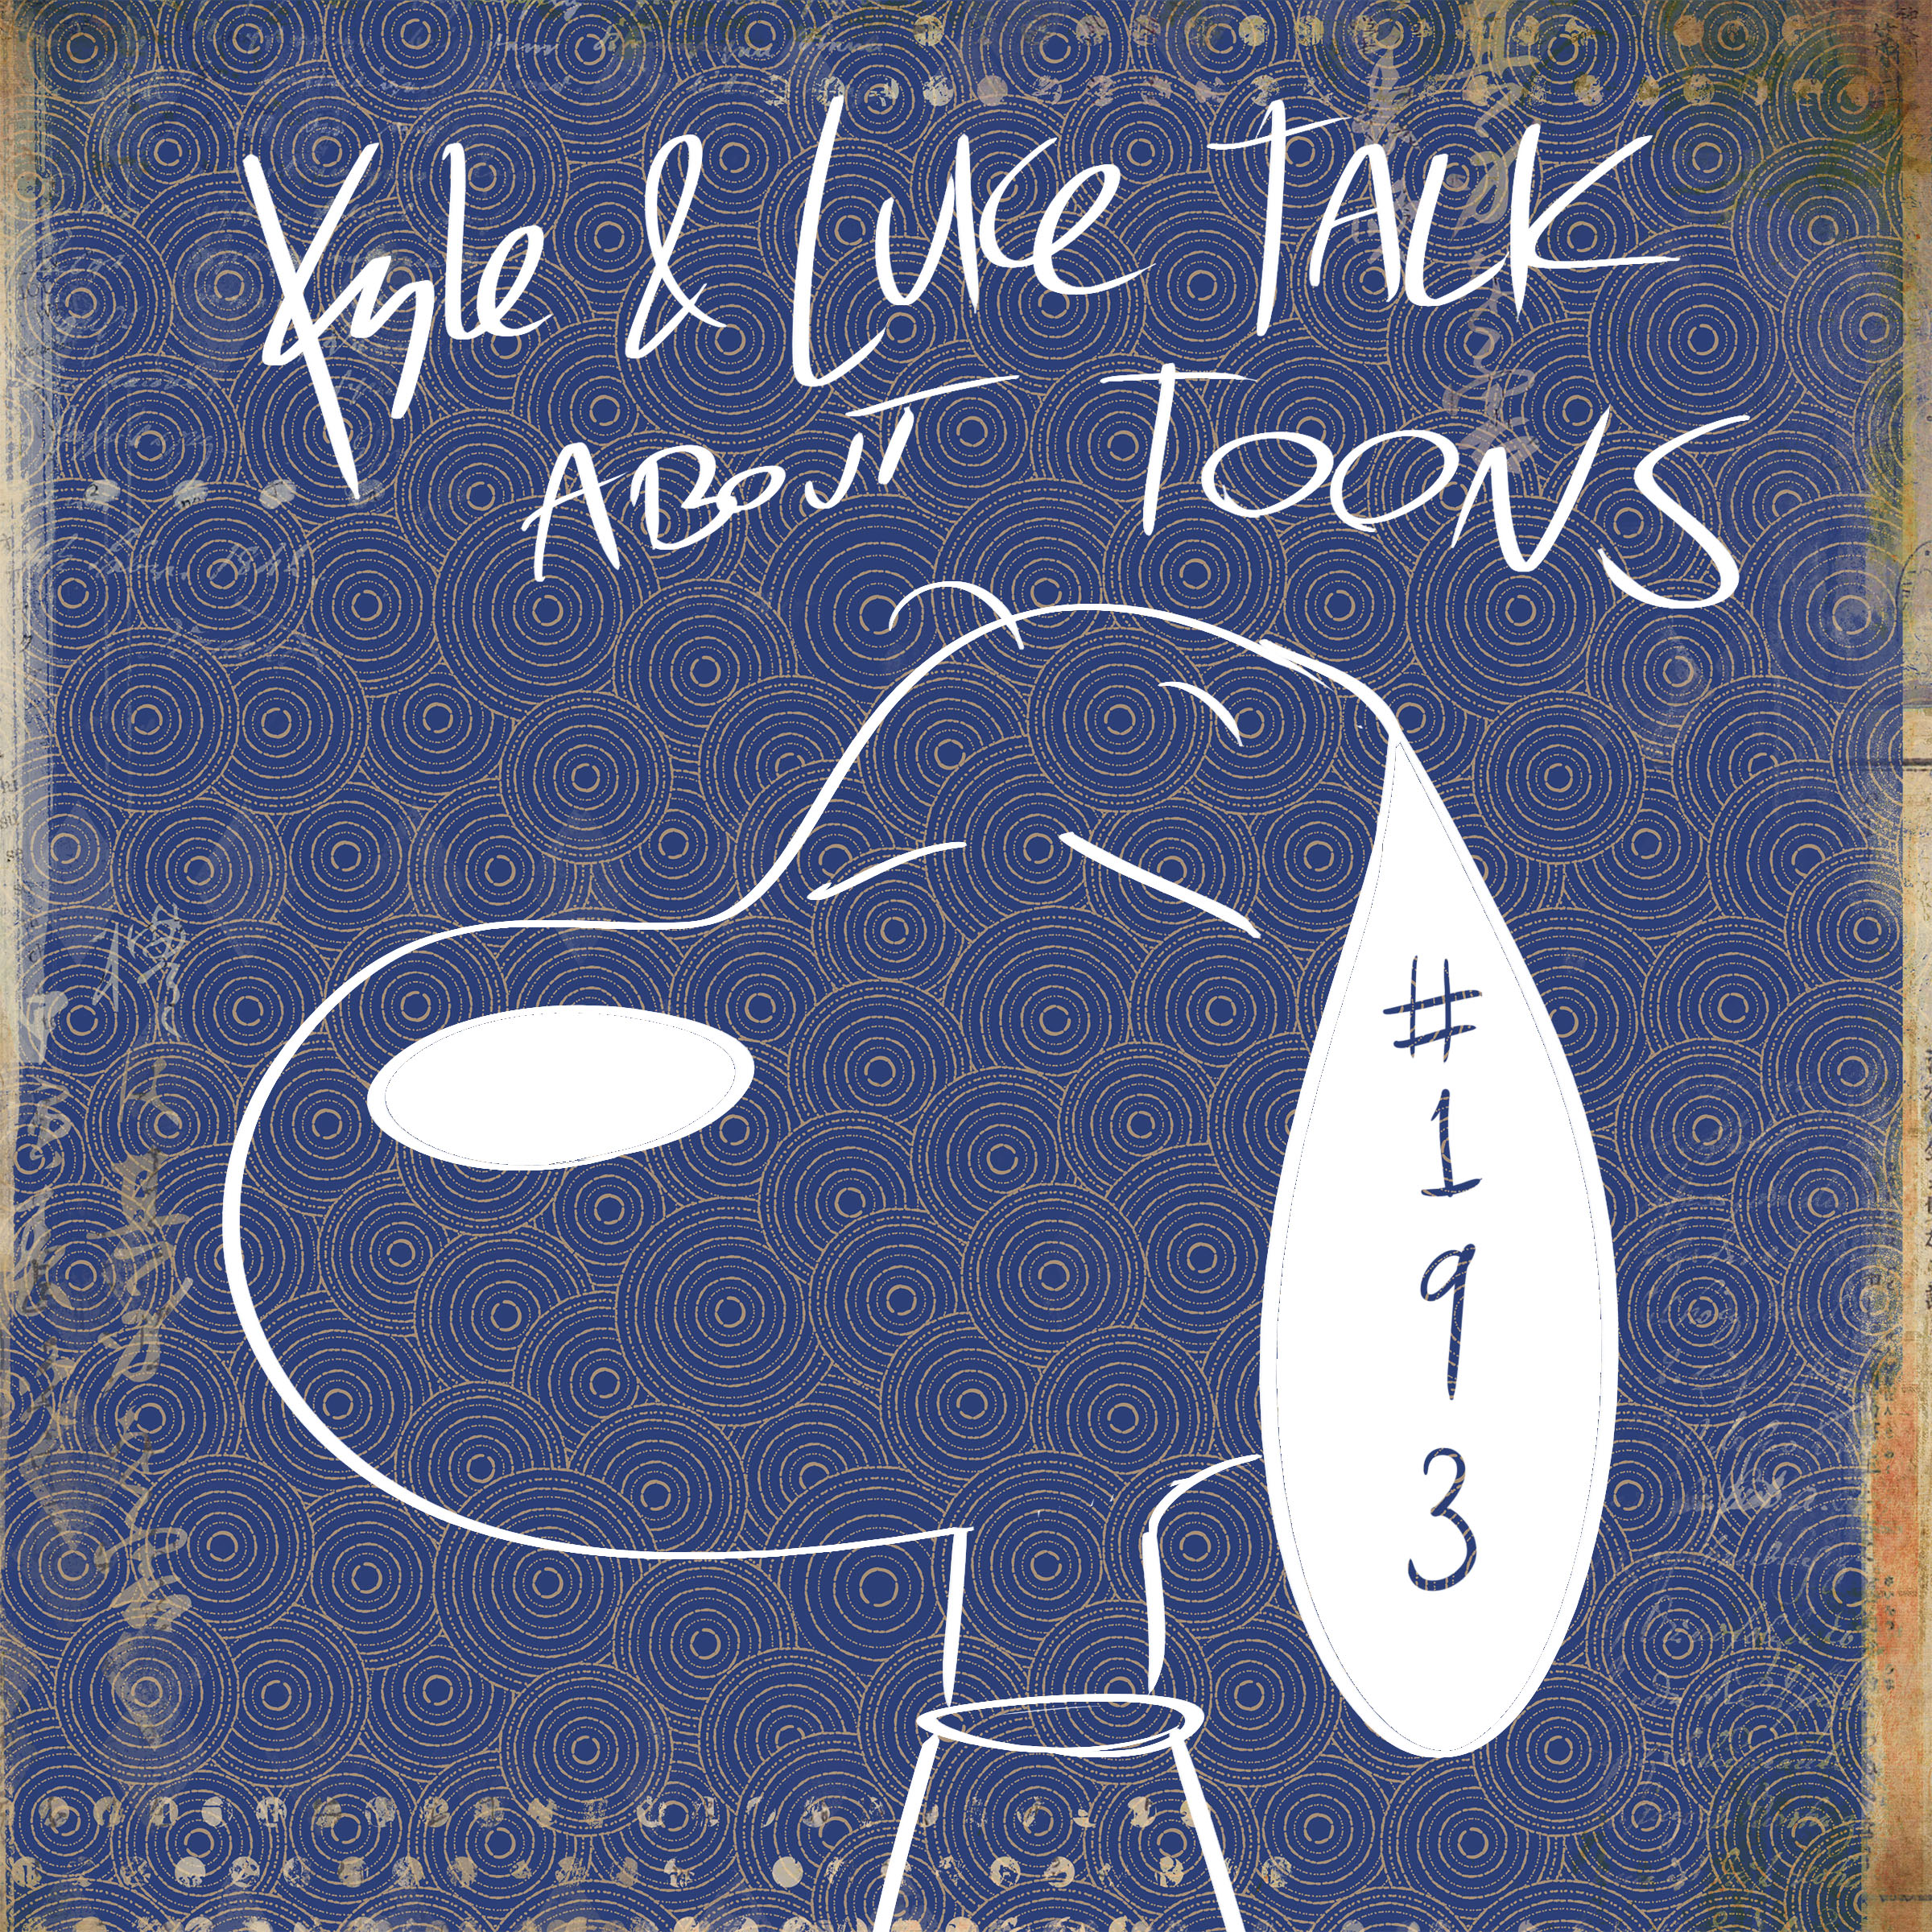 Kyle and Luke Talk About Toons #193: Unambiguous They